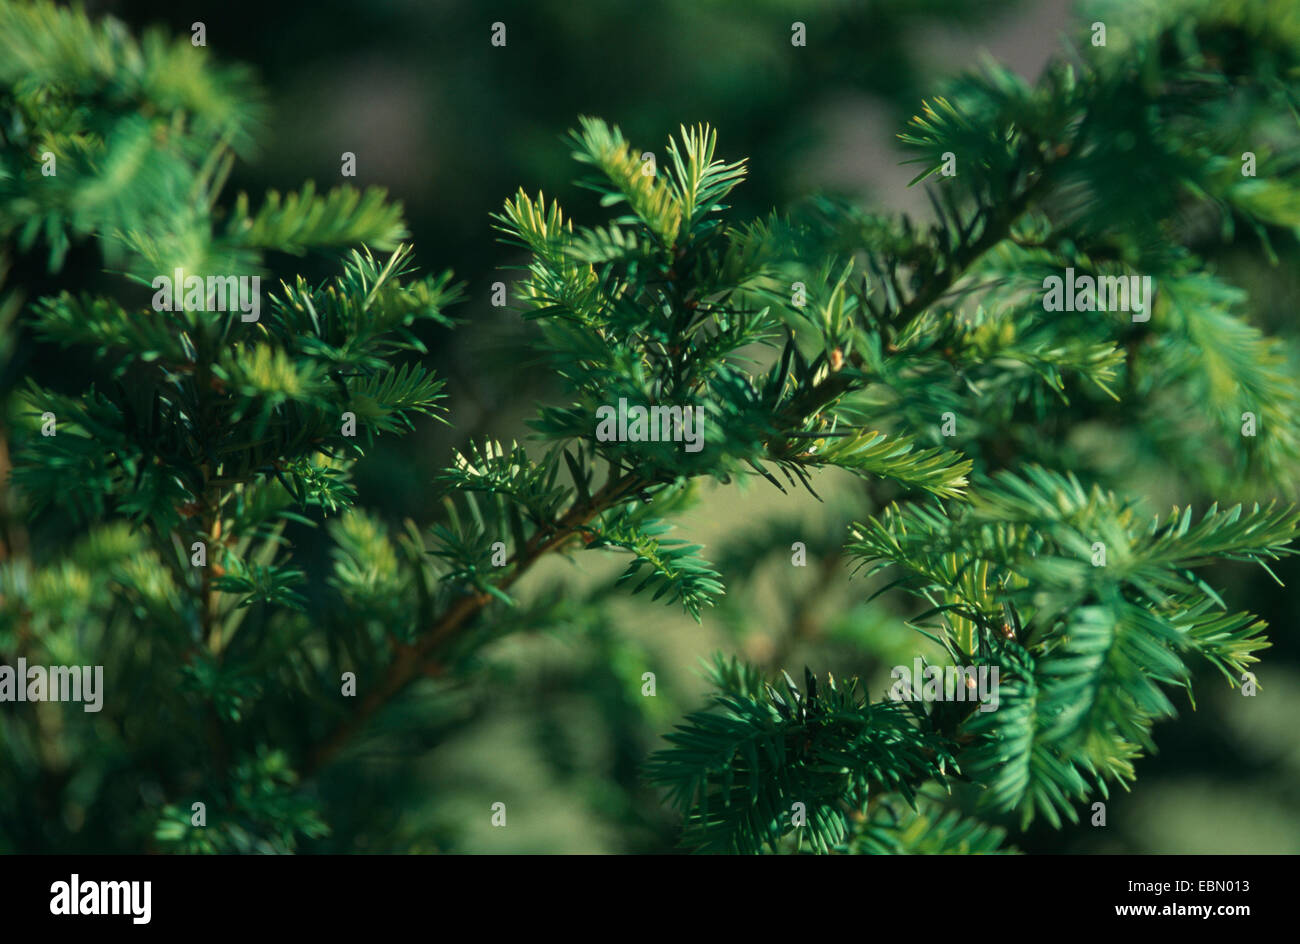 western yew, pacific yew (Taxus brevifolia), is used against cancer - Stock Image